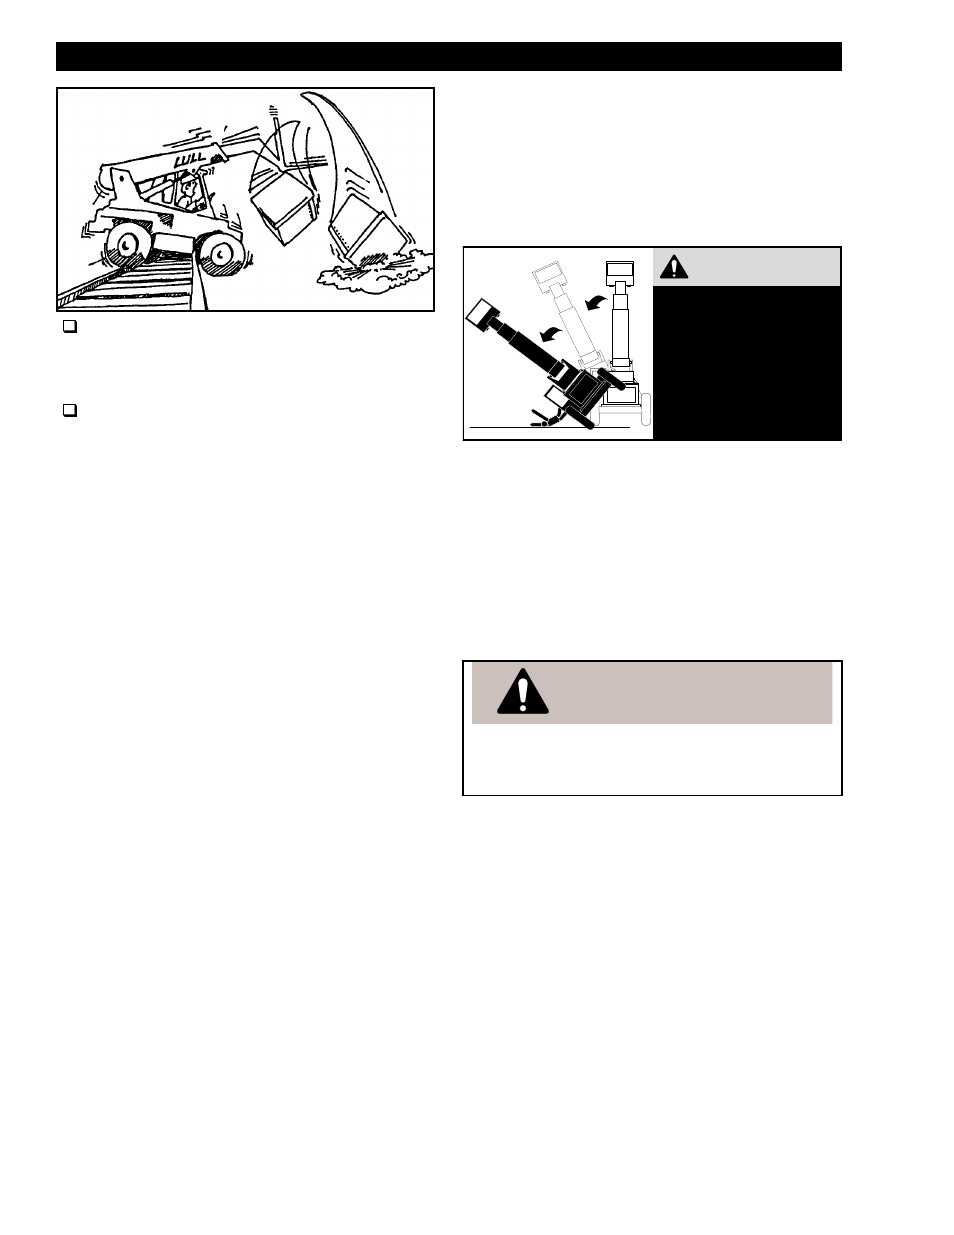 Warning, General operating procedures, Safely placing the load | Lull 644B Operation  Manual User Manual | Page 28 / 42